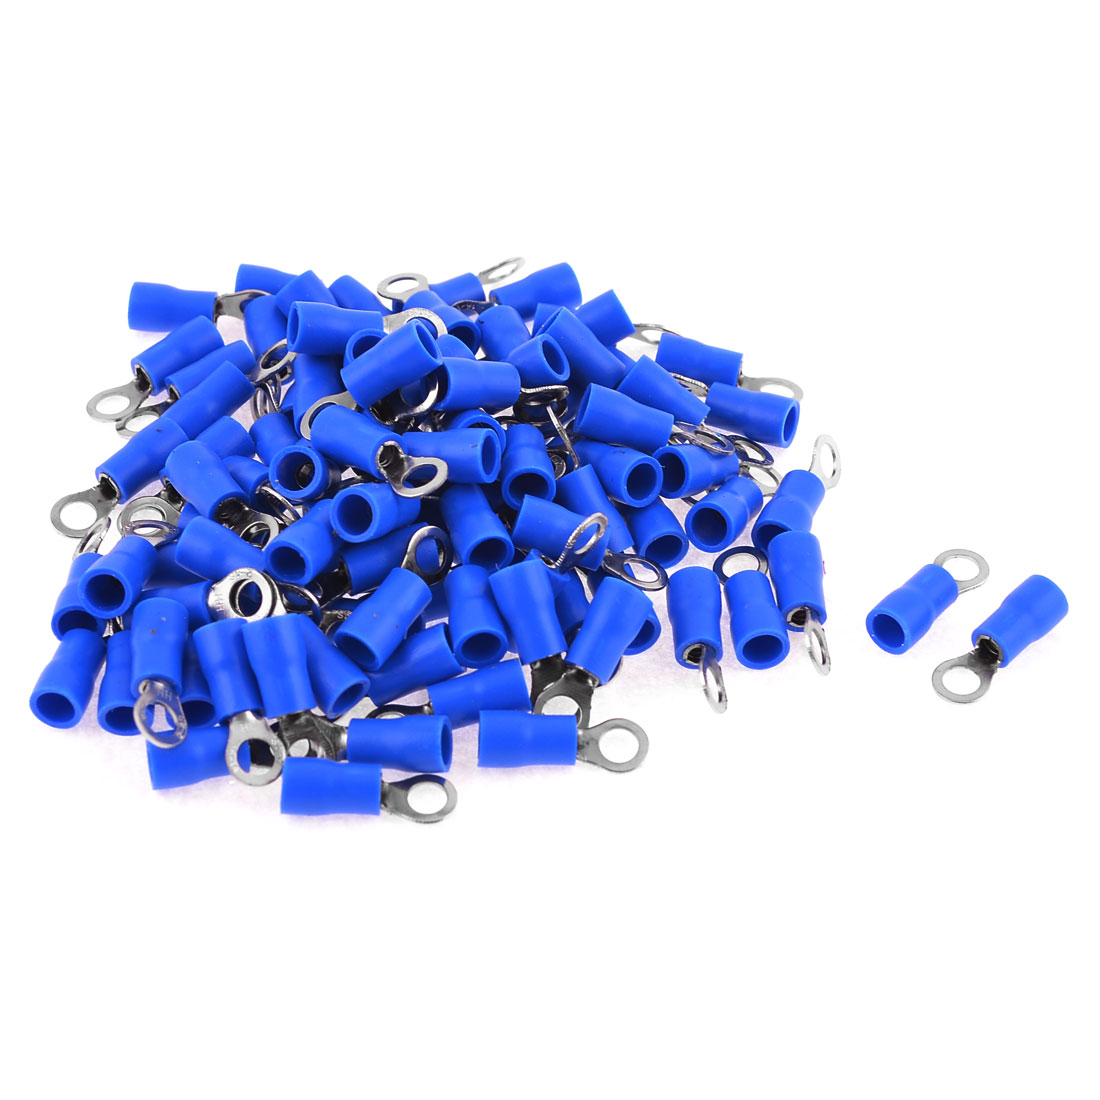 100 Pcs Blue PVC Insulating Sleeve Ring Terminals Cable Lug RV2-4 AWG 16-14